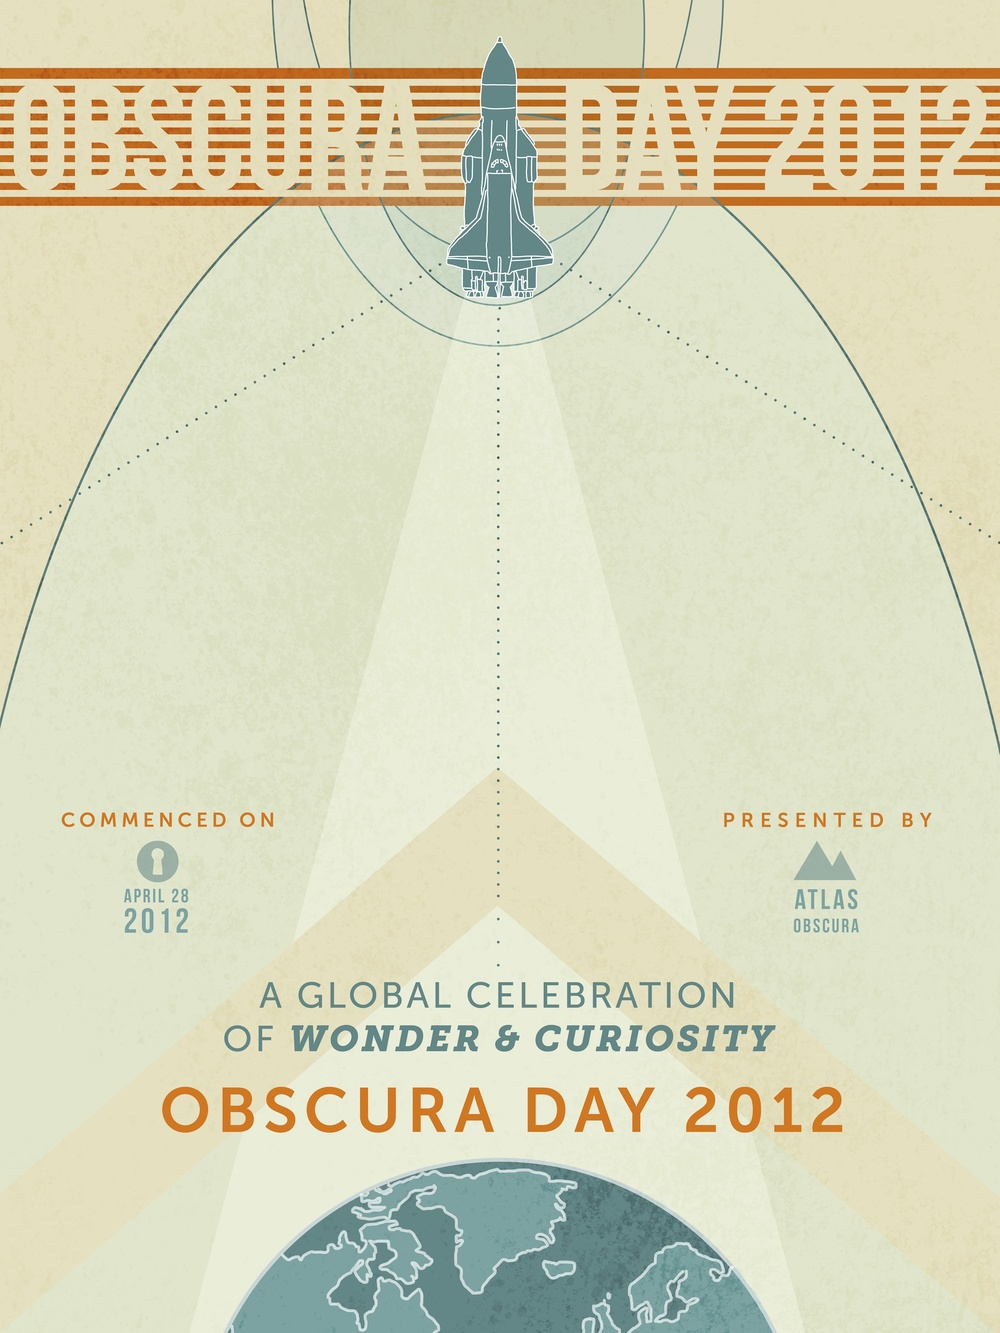 Obscura Day 2012 Poster